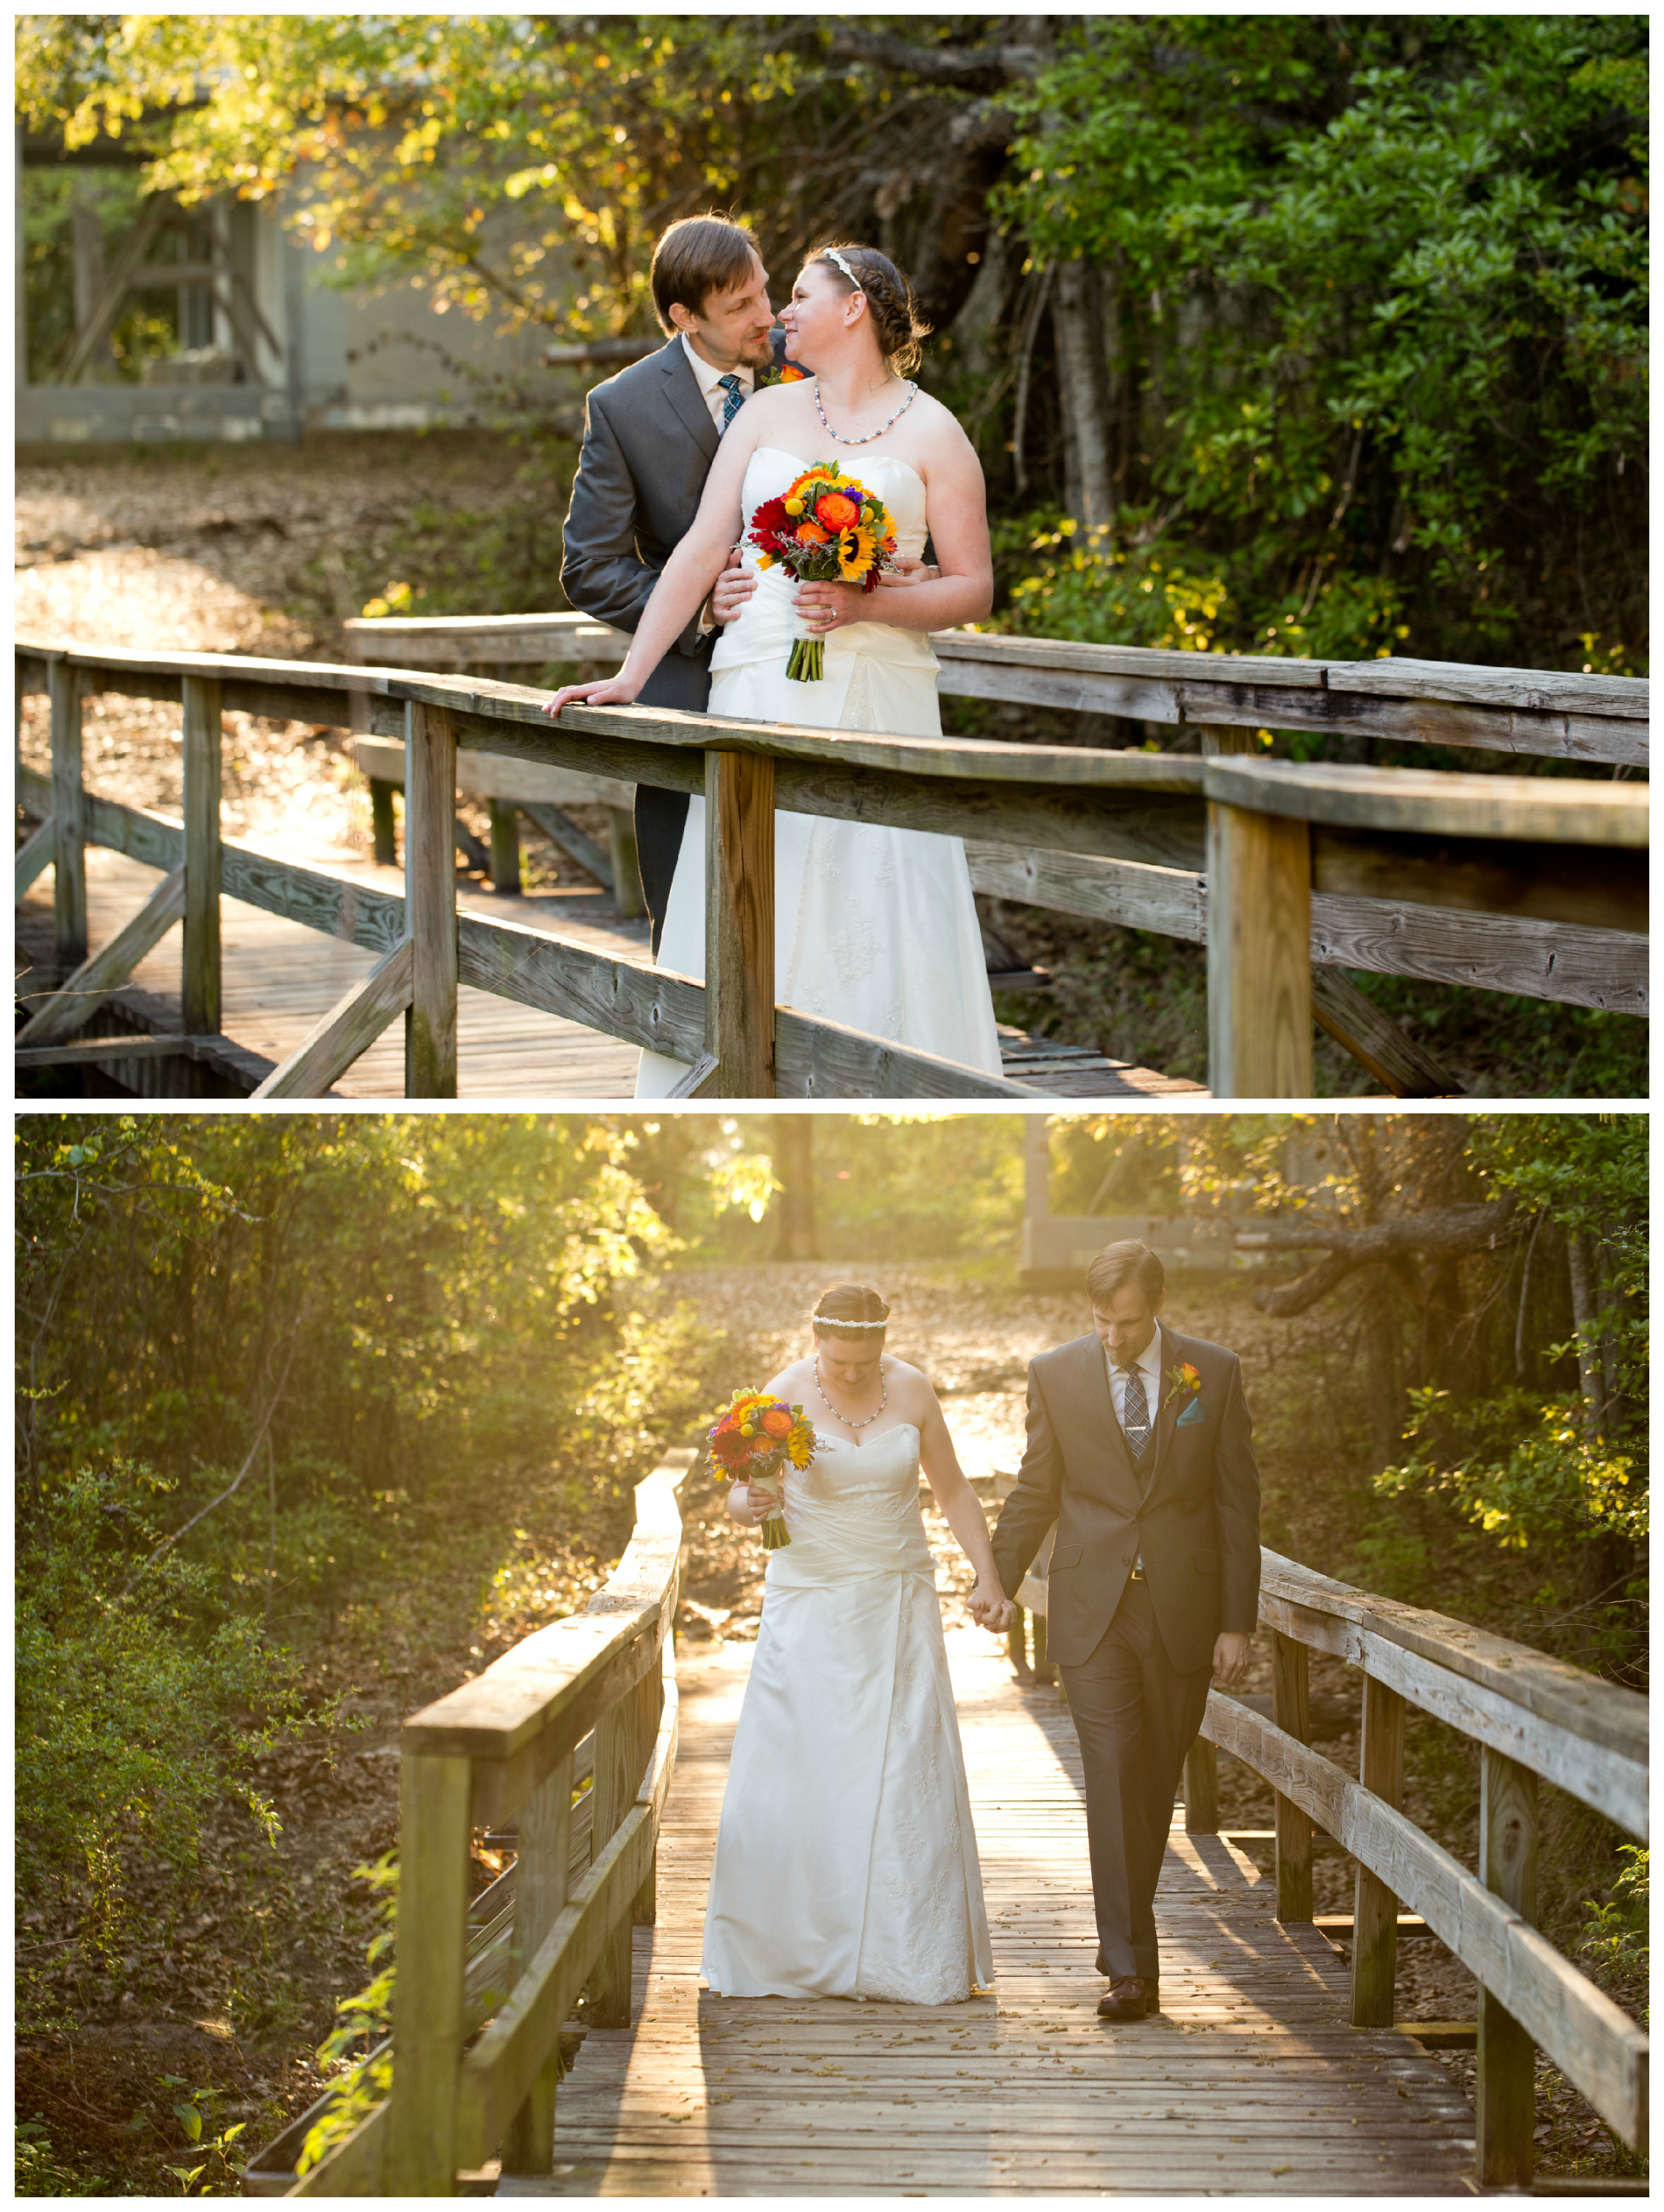 dreamy wedding portraits by Uninvented Colors Photography (Biloxi, Mississippi)